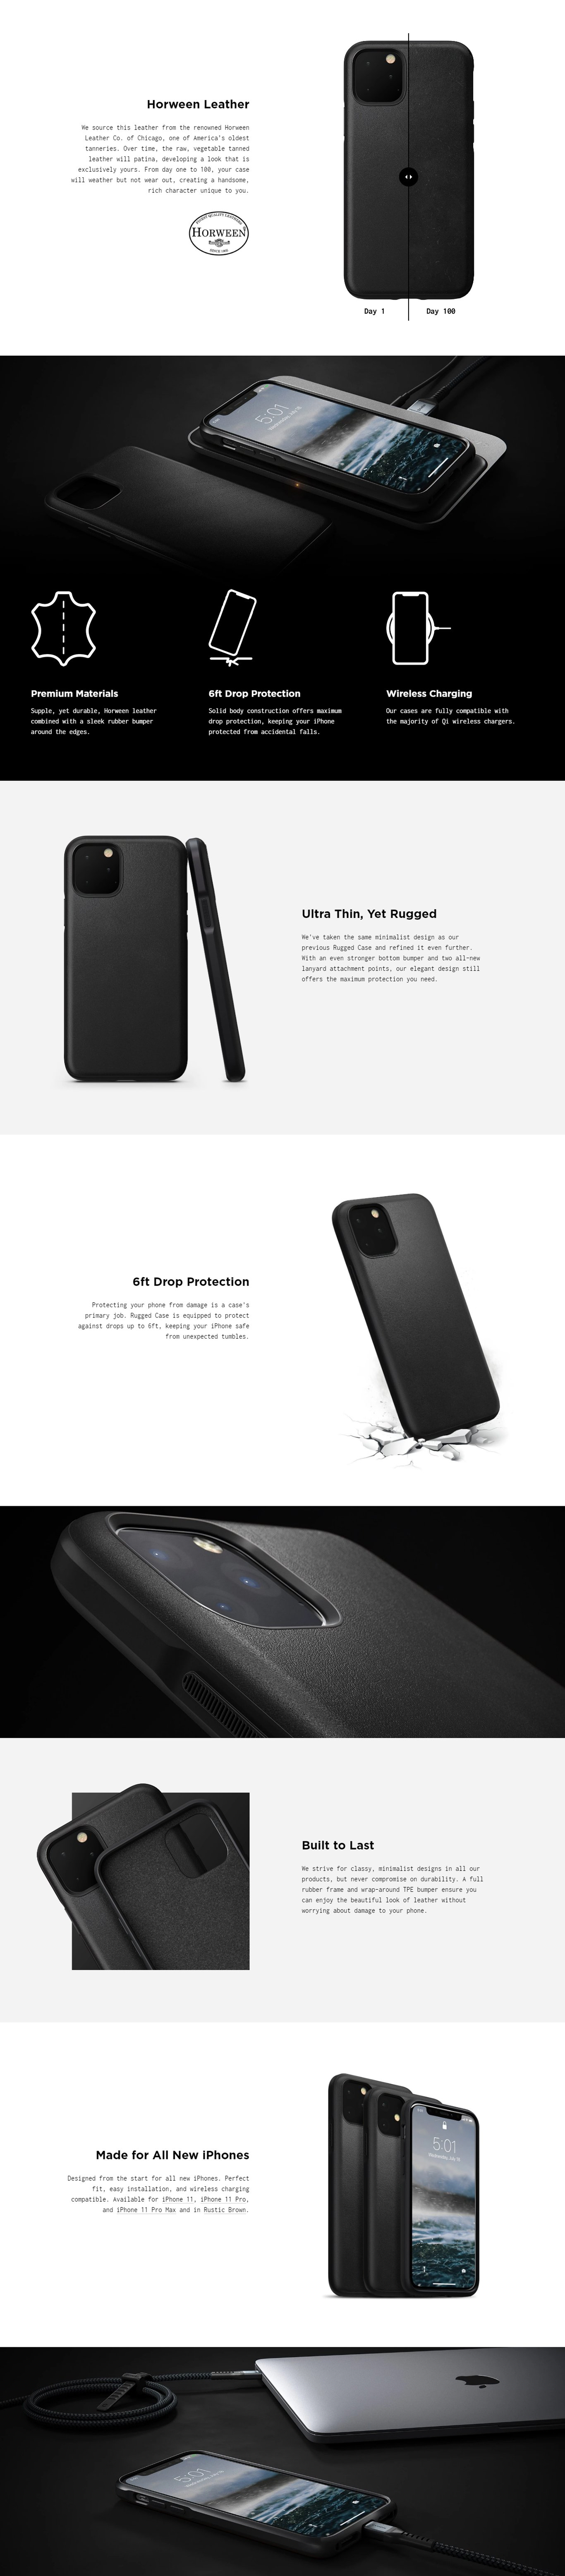 1-blck-nomad-rugged-case-iphone-11-pro-black-and-rustic-brown-forexengineer-authorised-retailer-malaysia